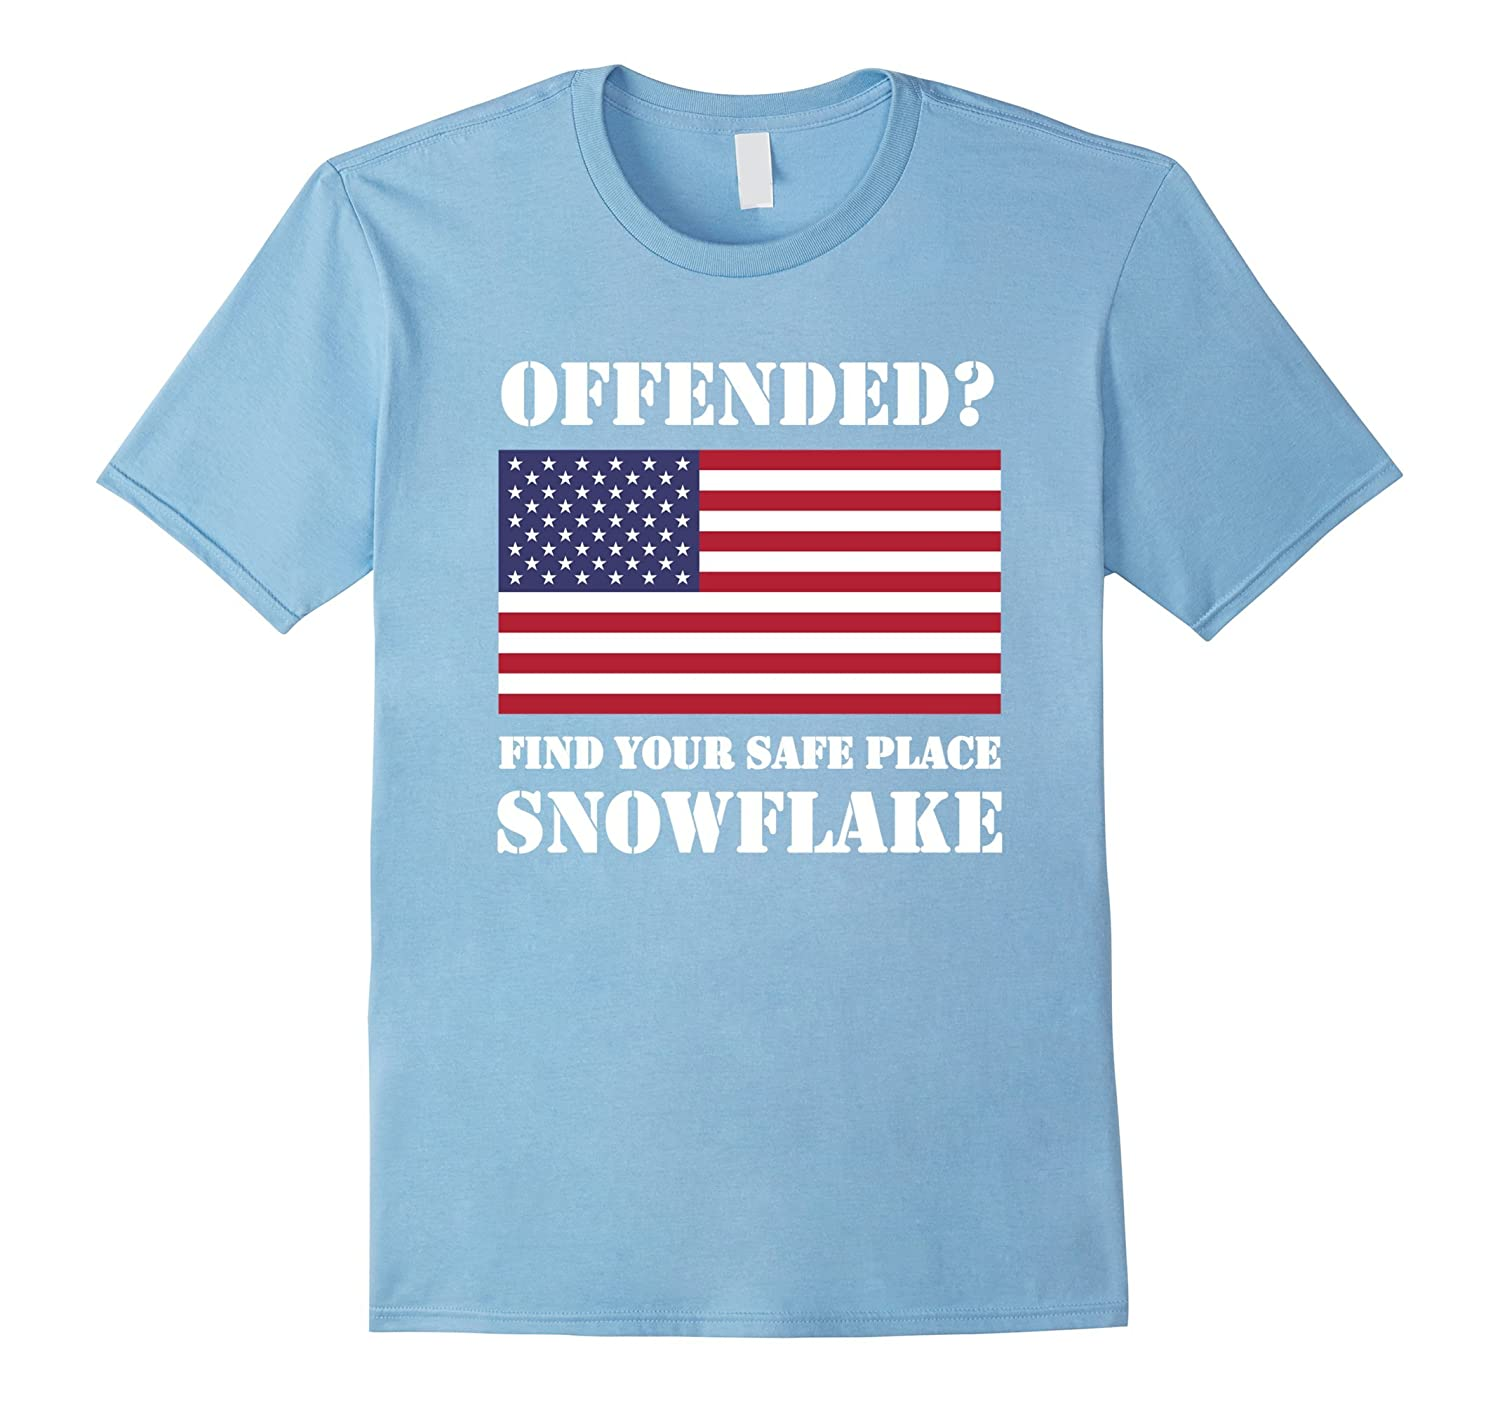 Find Your Safe Space Snowflake T-Shirt - Pro-Trump Tee Shirt-FL